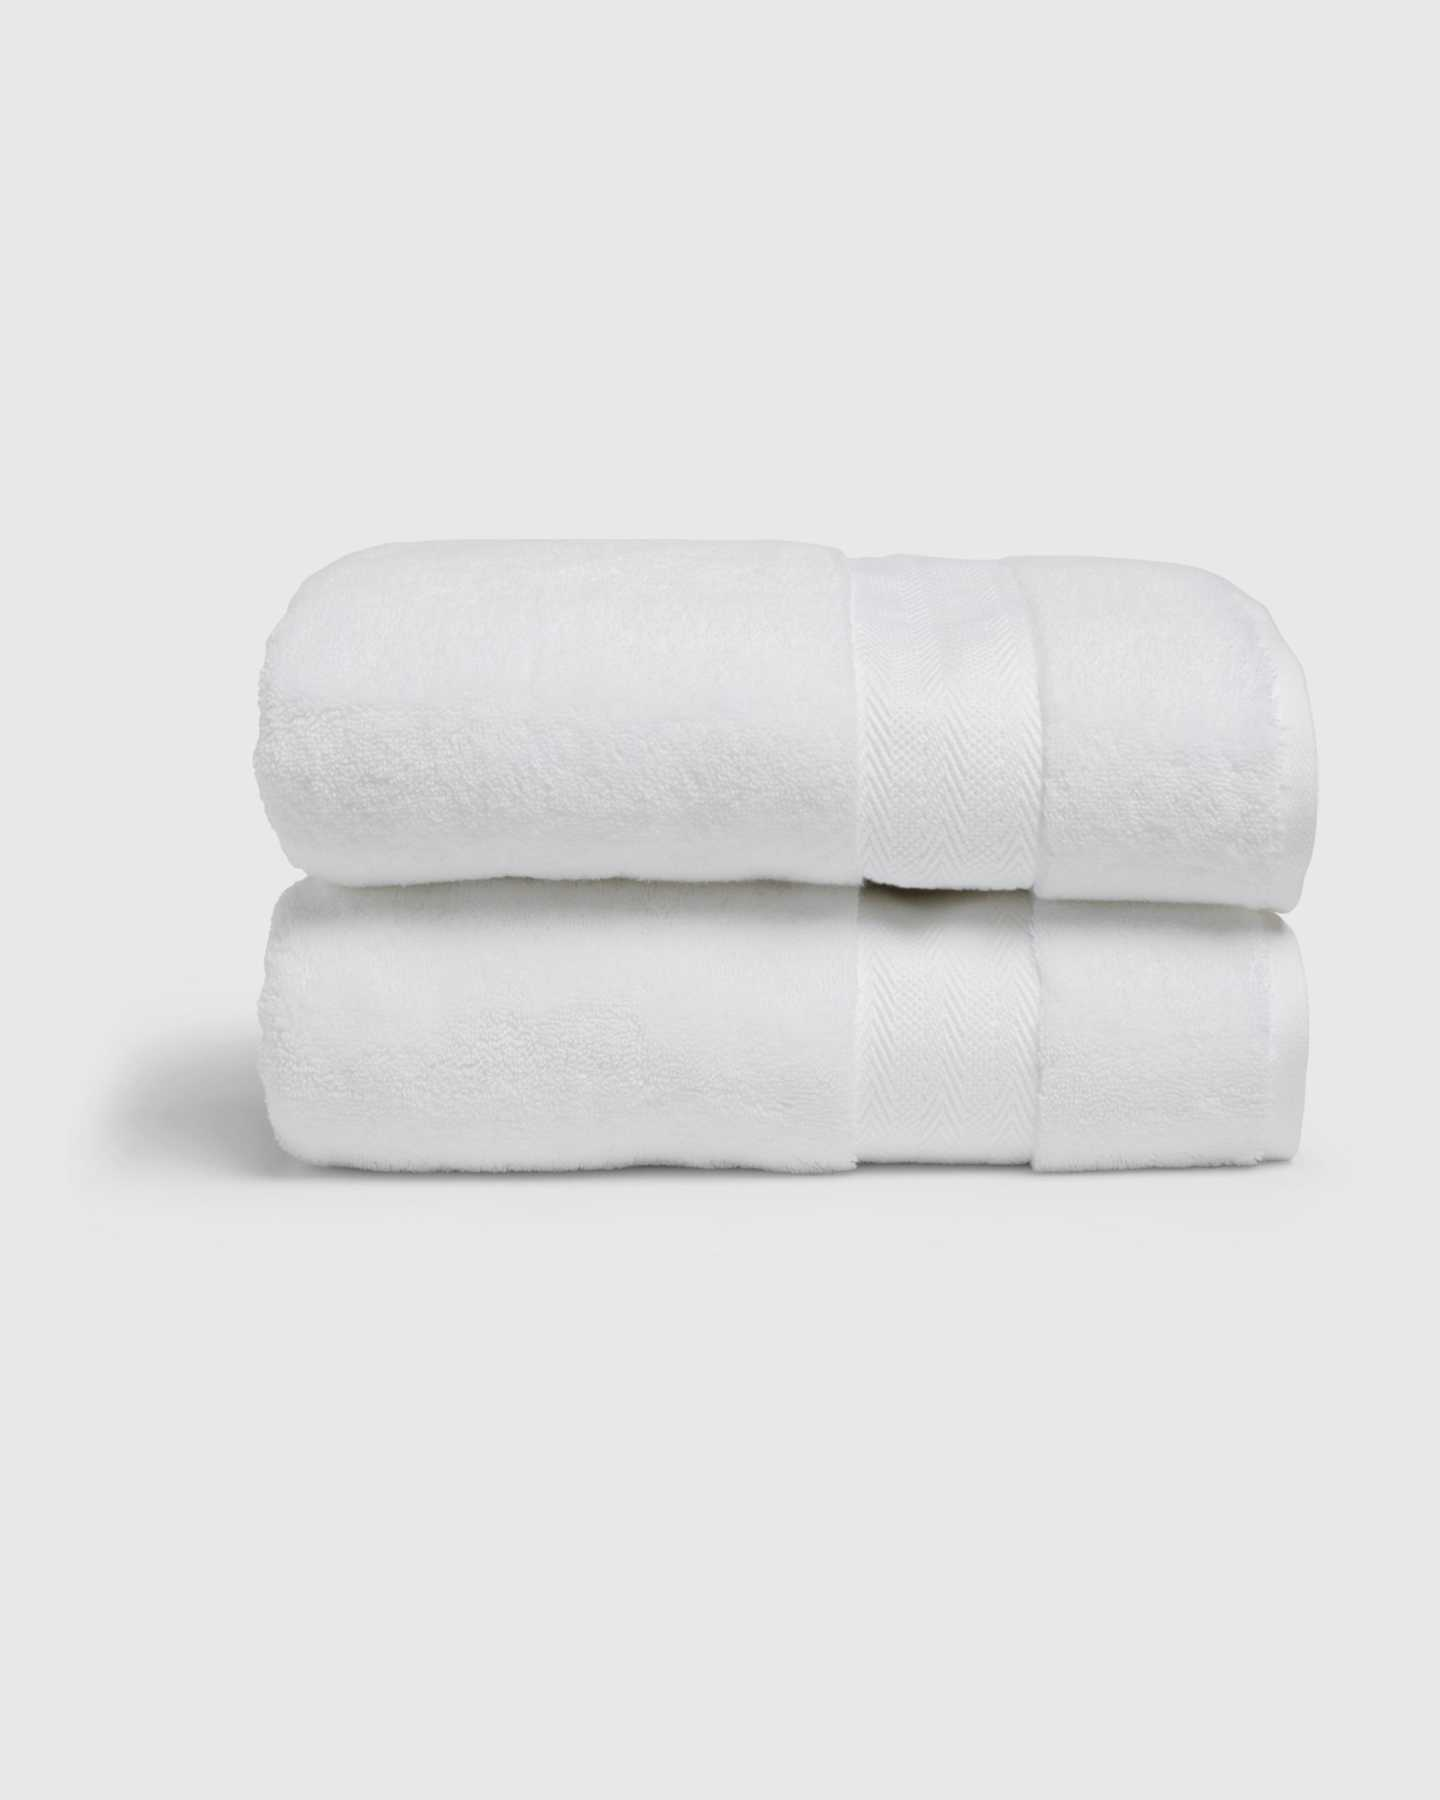 Organic Turkish Spa Bath Towels (Set of 2) - White - 2